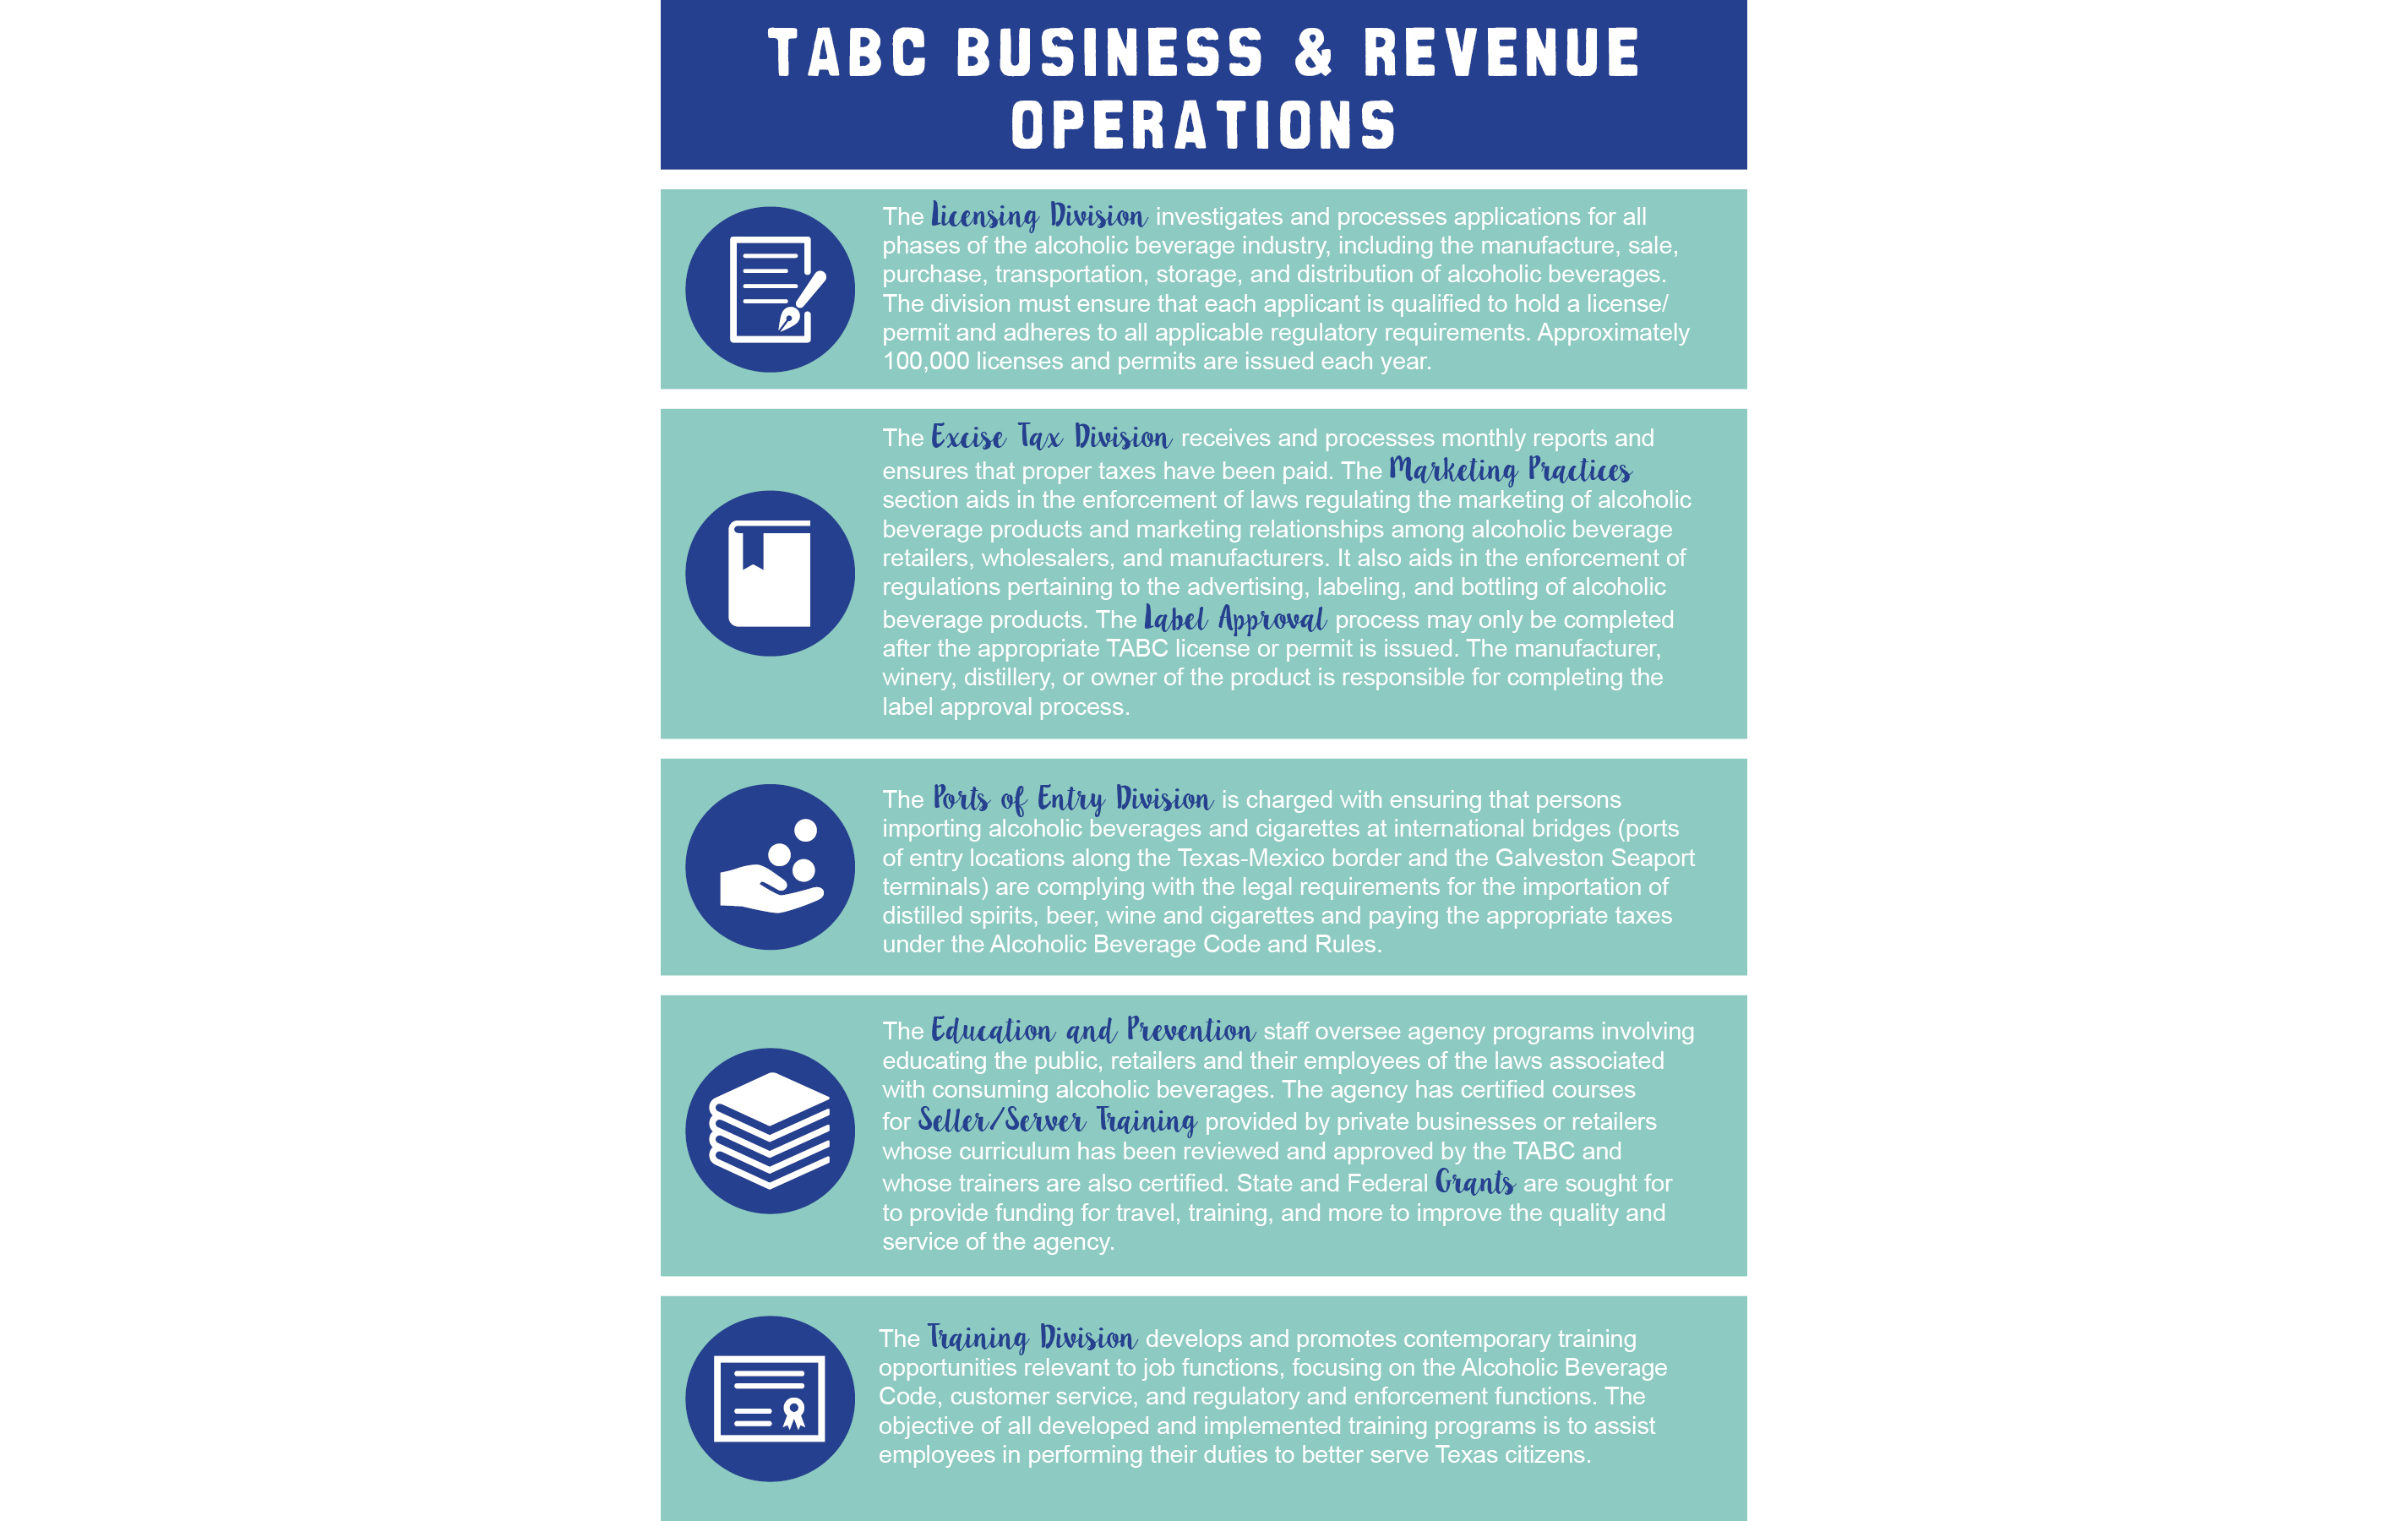 Business Revenue Operations Card